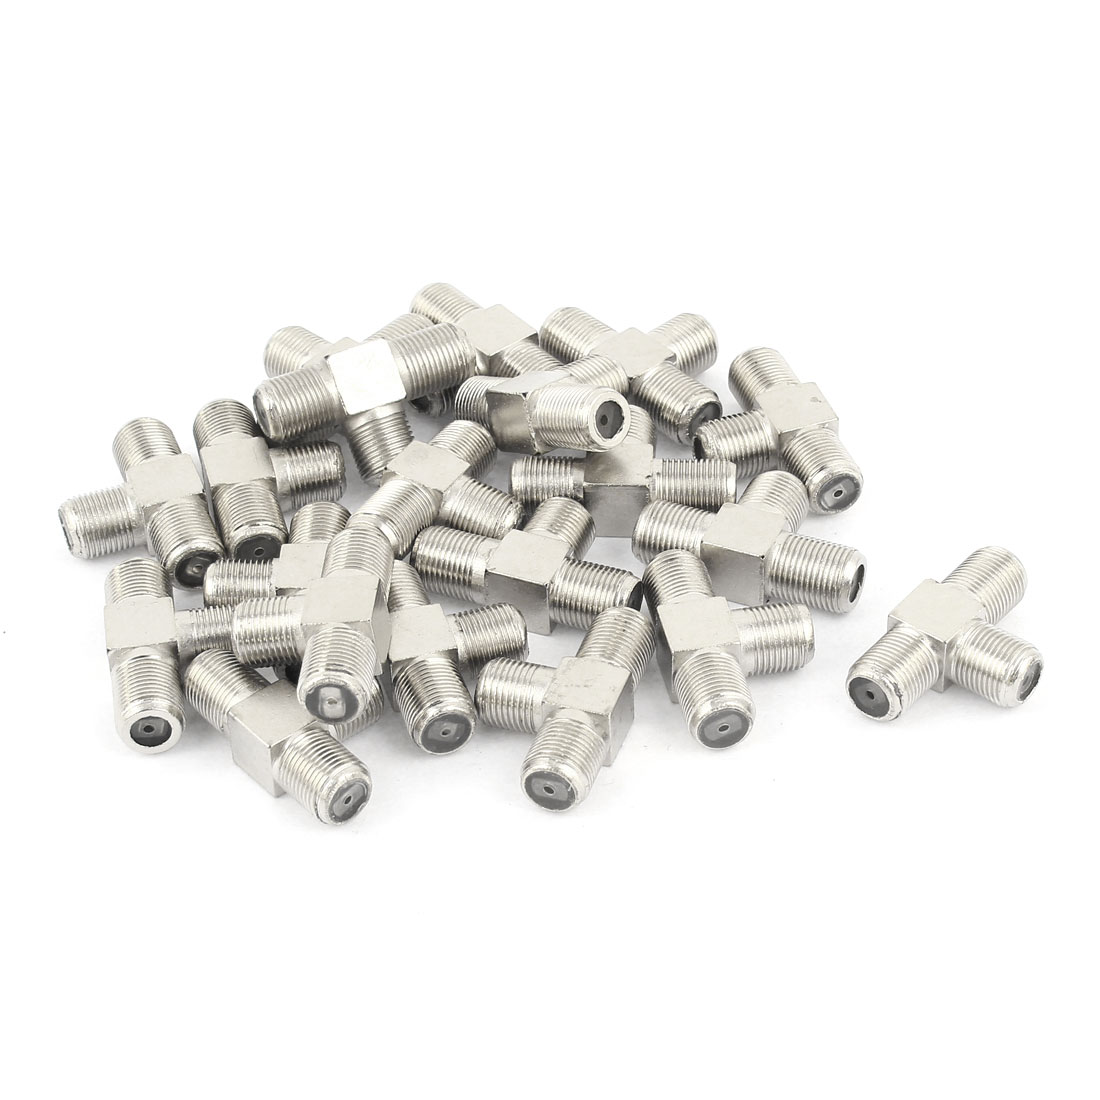 20 Pcs T Shaped 3 Way F Type Female Connector Adapter